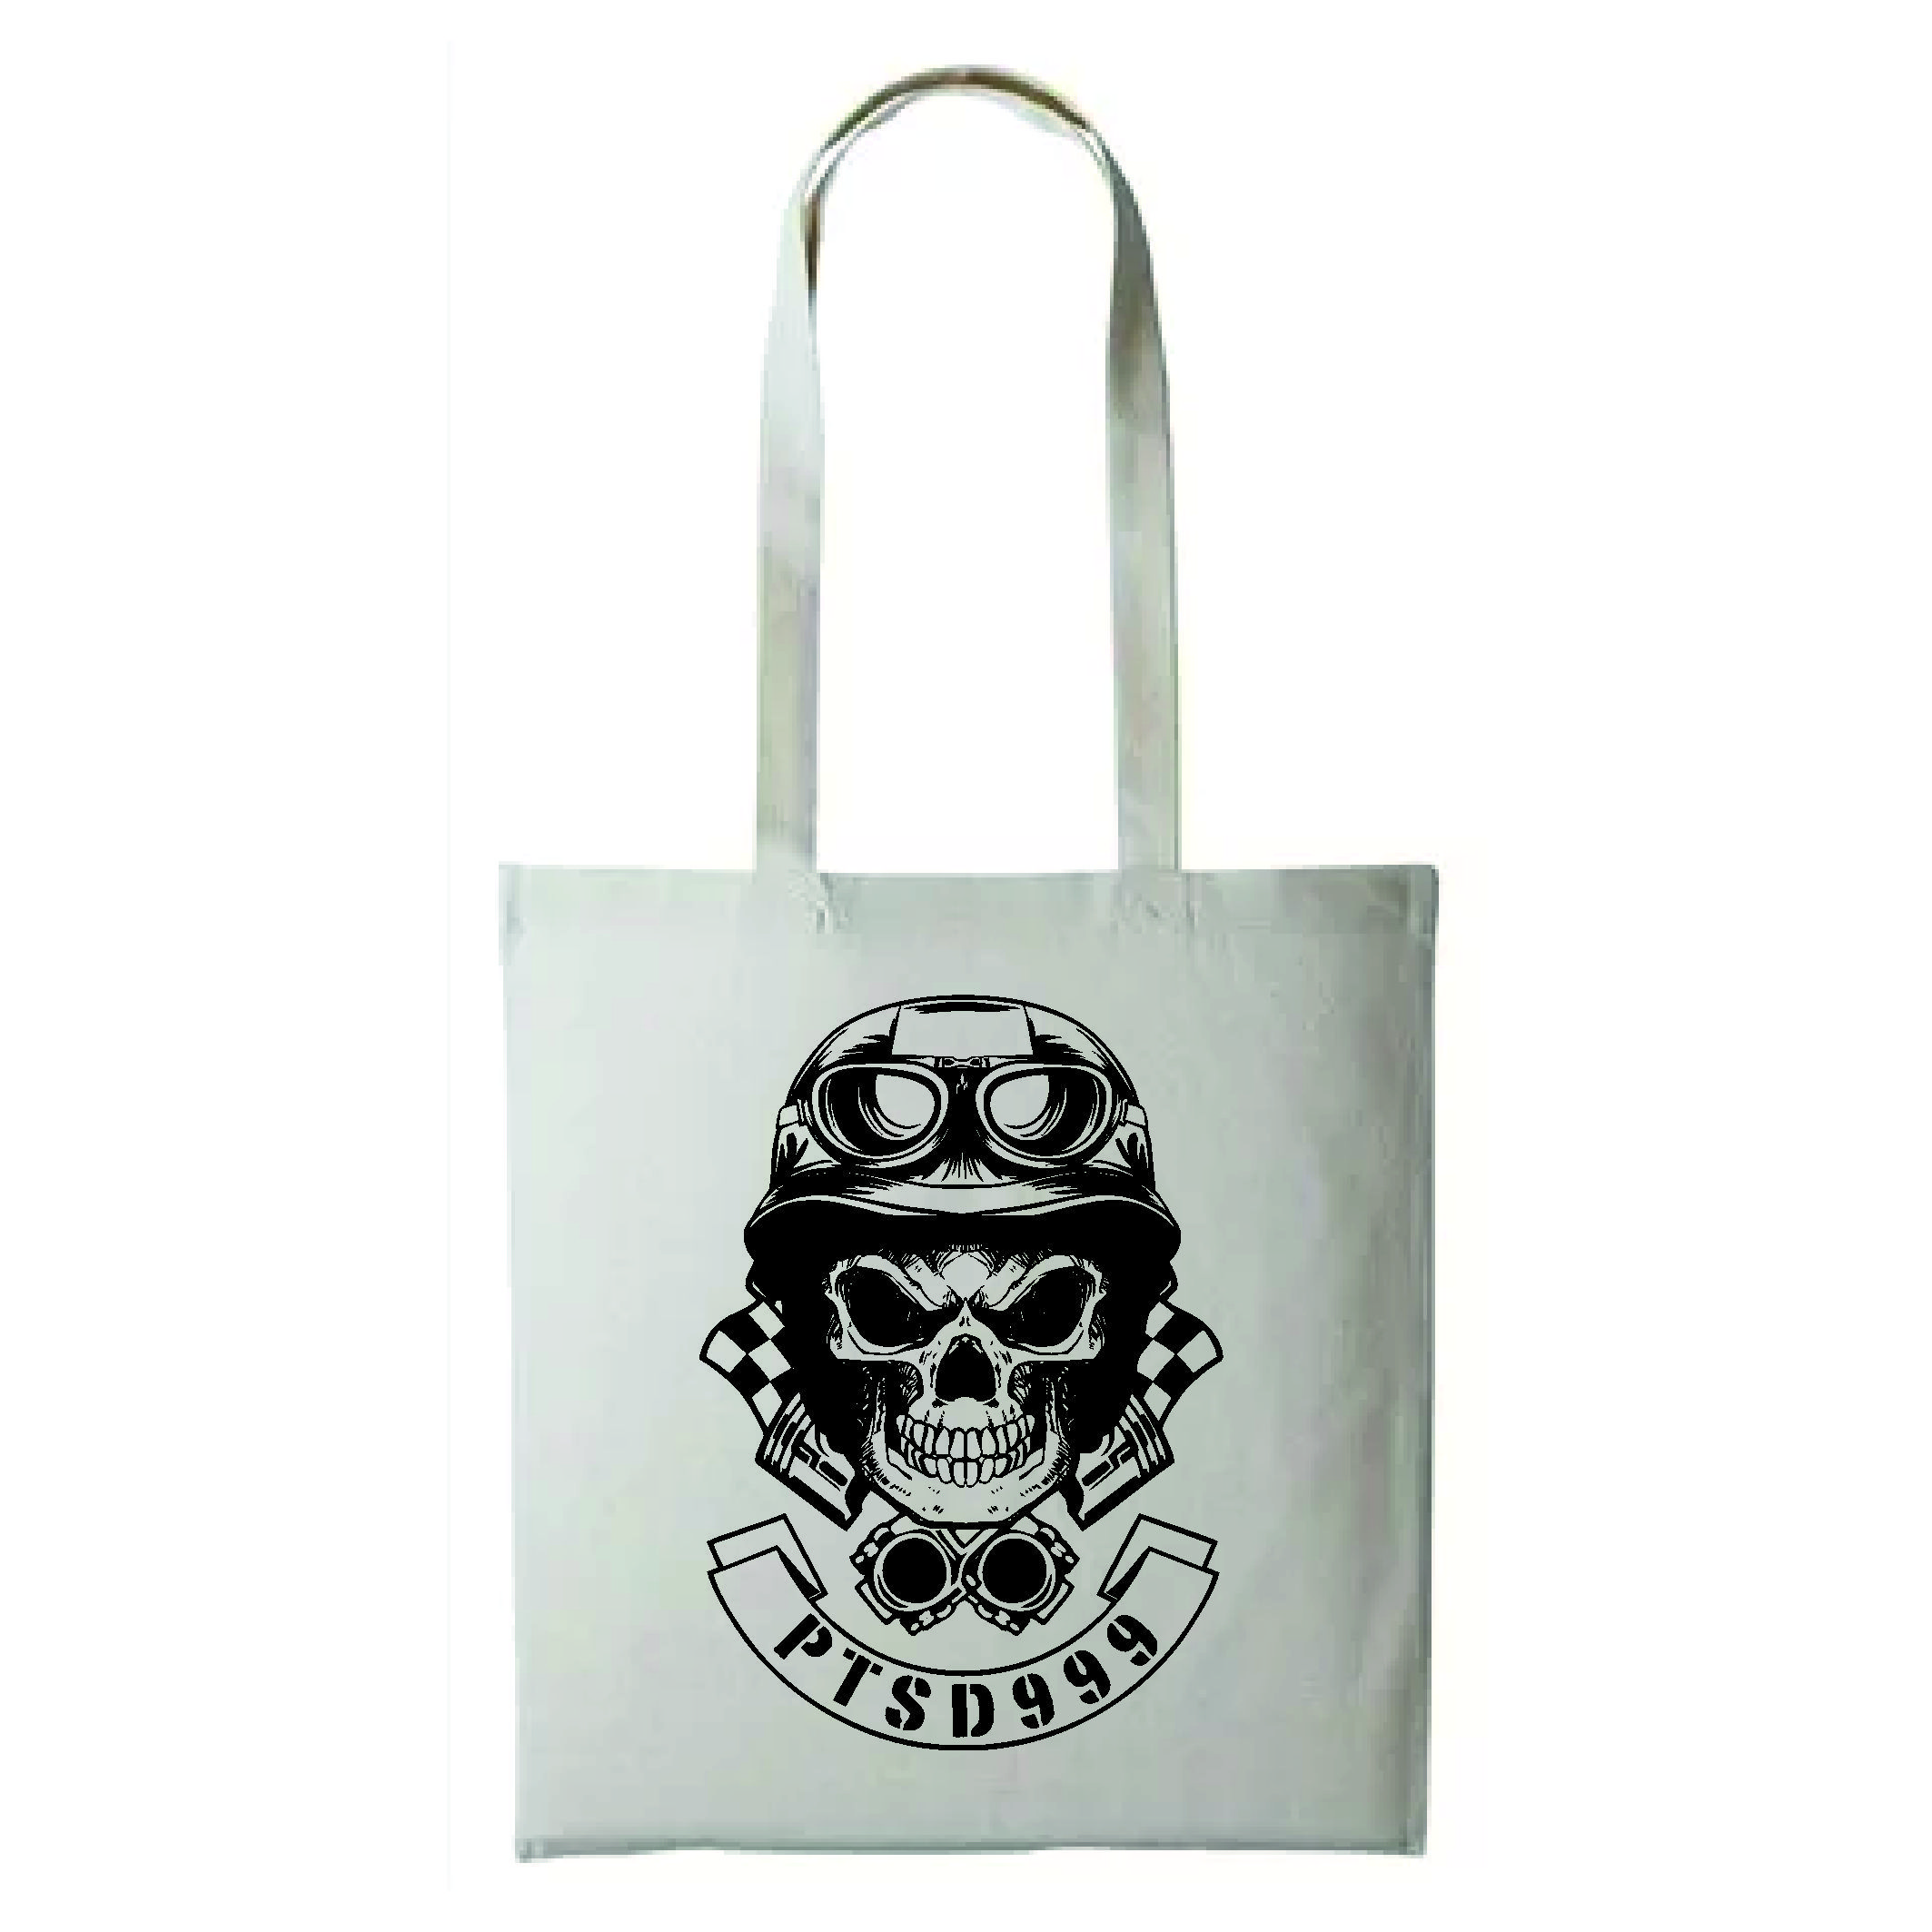 PTSD999- Black Dog Shopper Bag